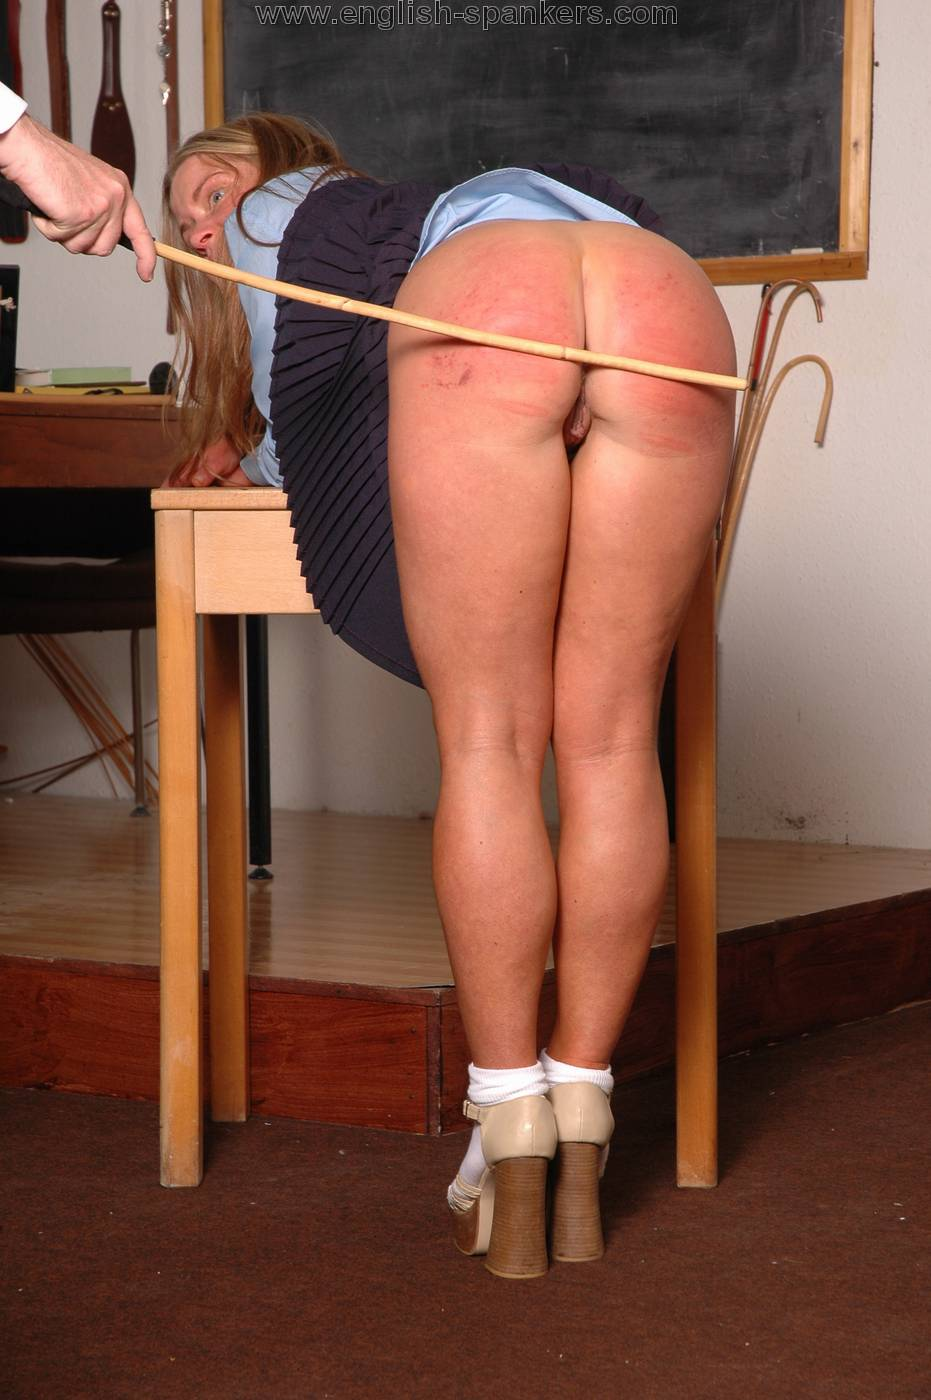 Hot Free spank gallery